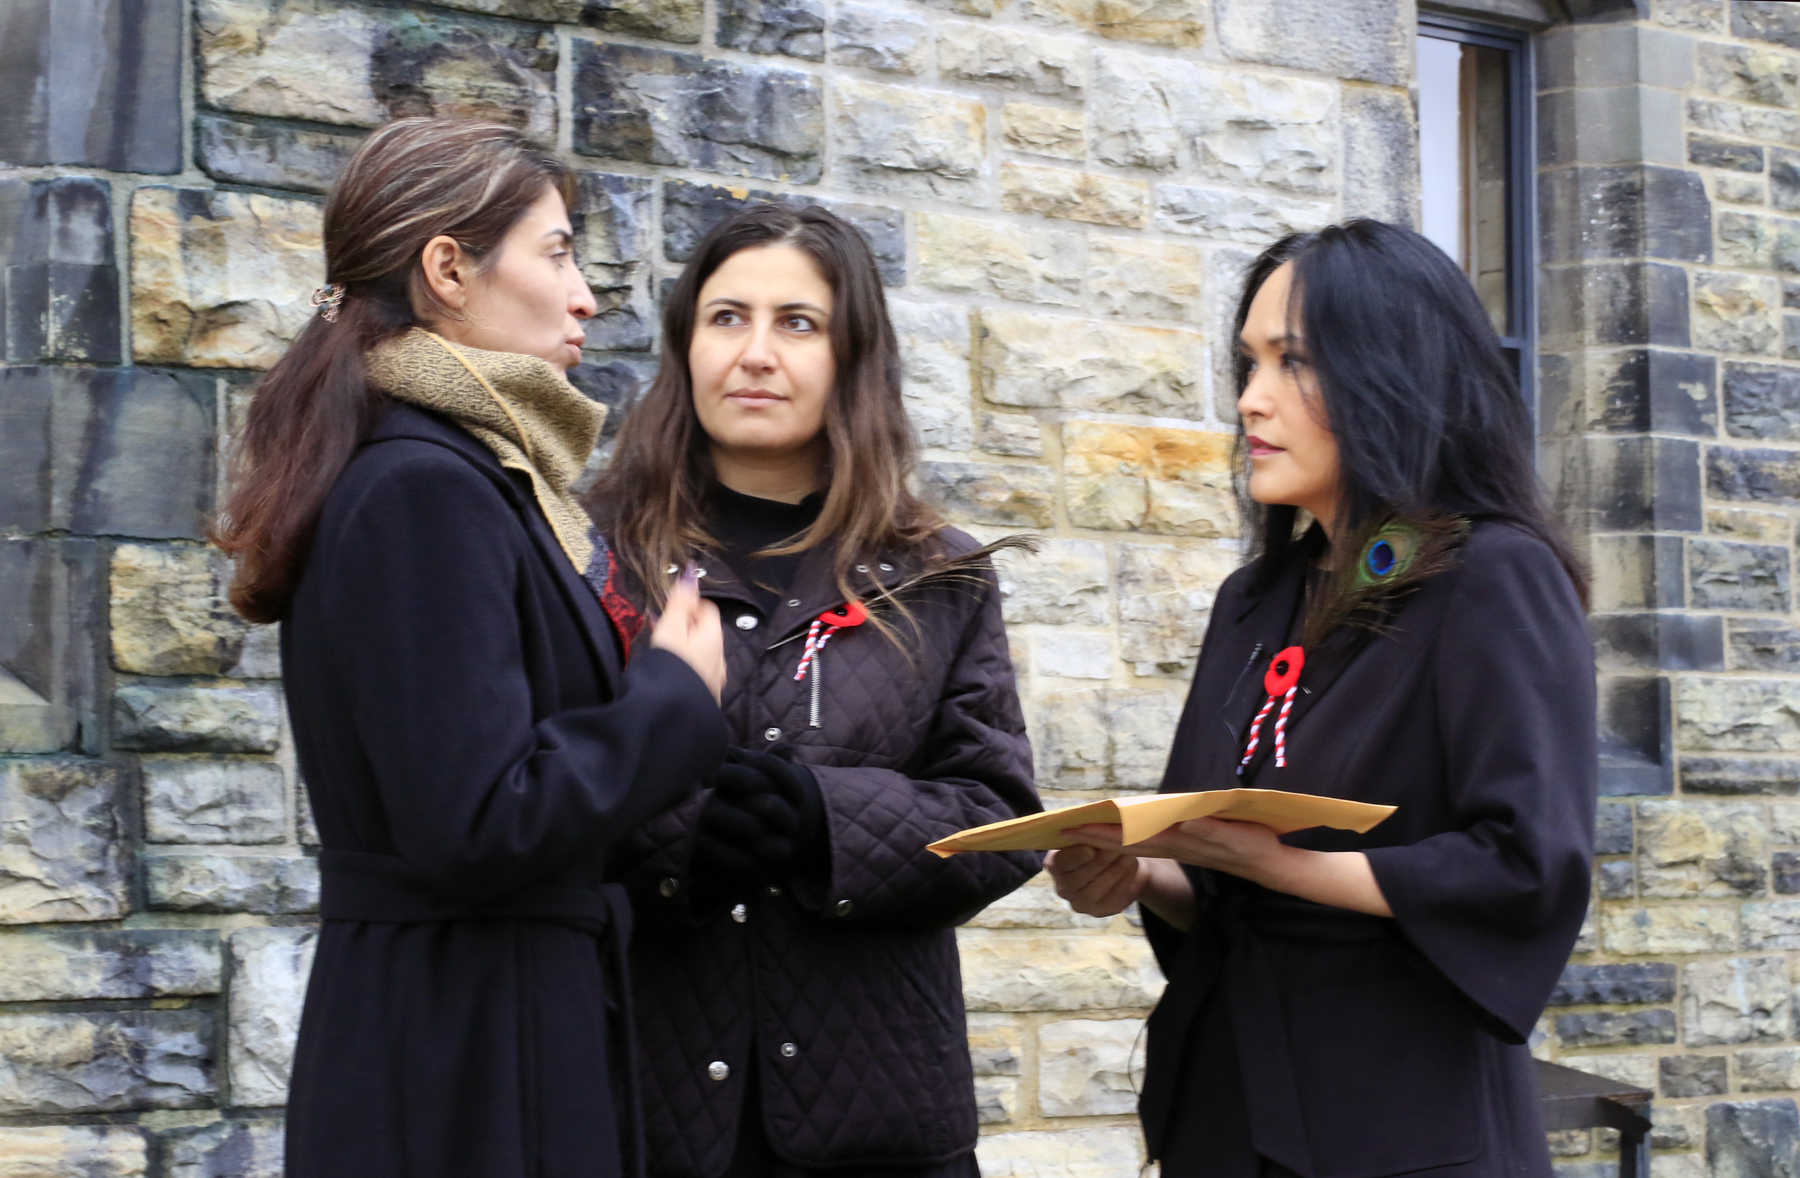 Adiba delivering petition for Yazidi trauma care to Jenny Kwan MP outside of Parliament. Dilkhaz is in the centre providing translation from Kurmanji to English and back.